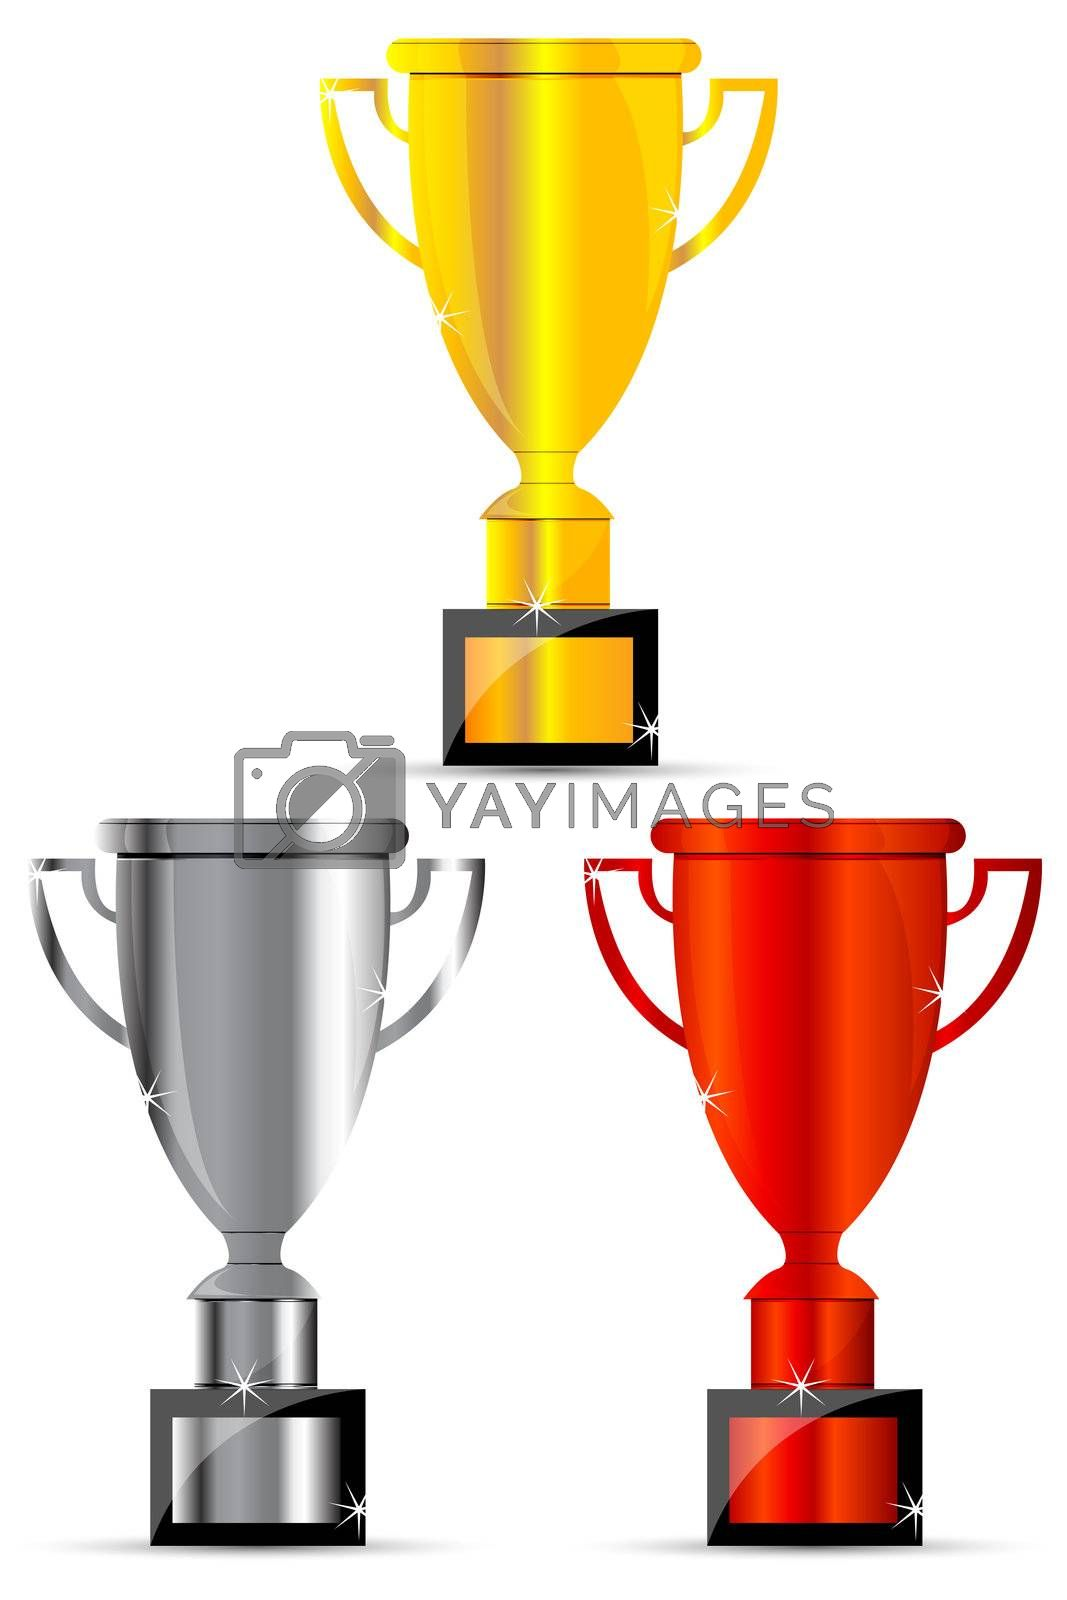 Royalty free image of trophy icons by get4net